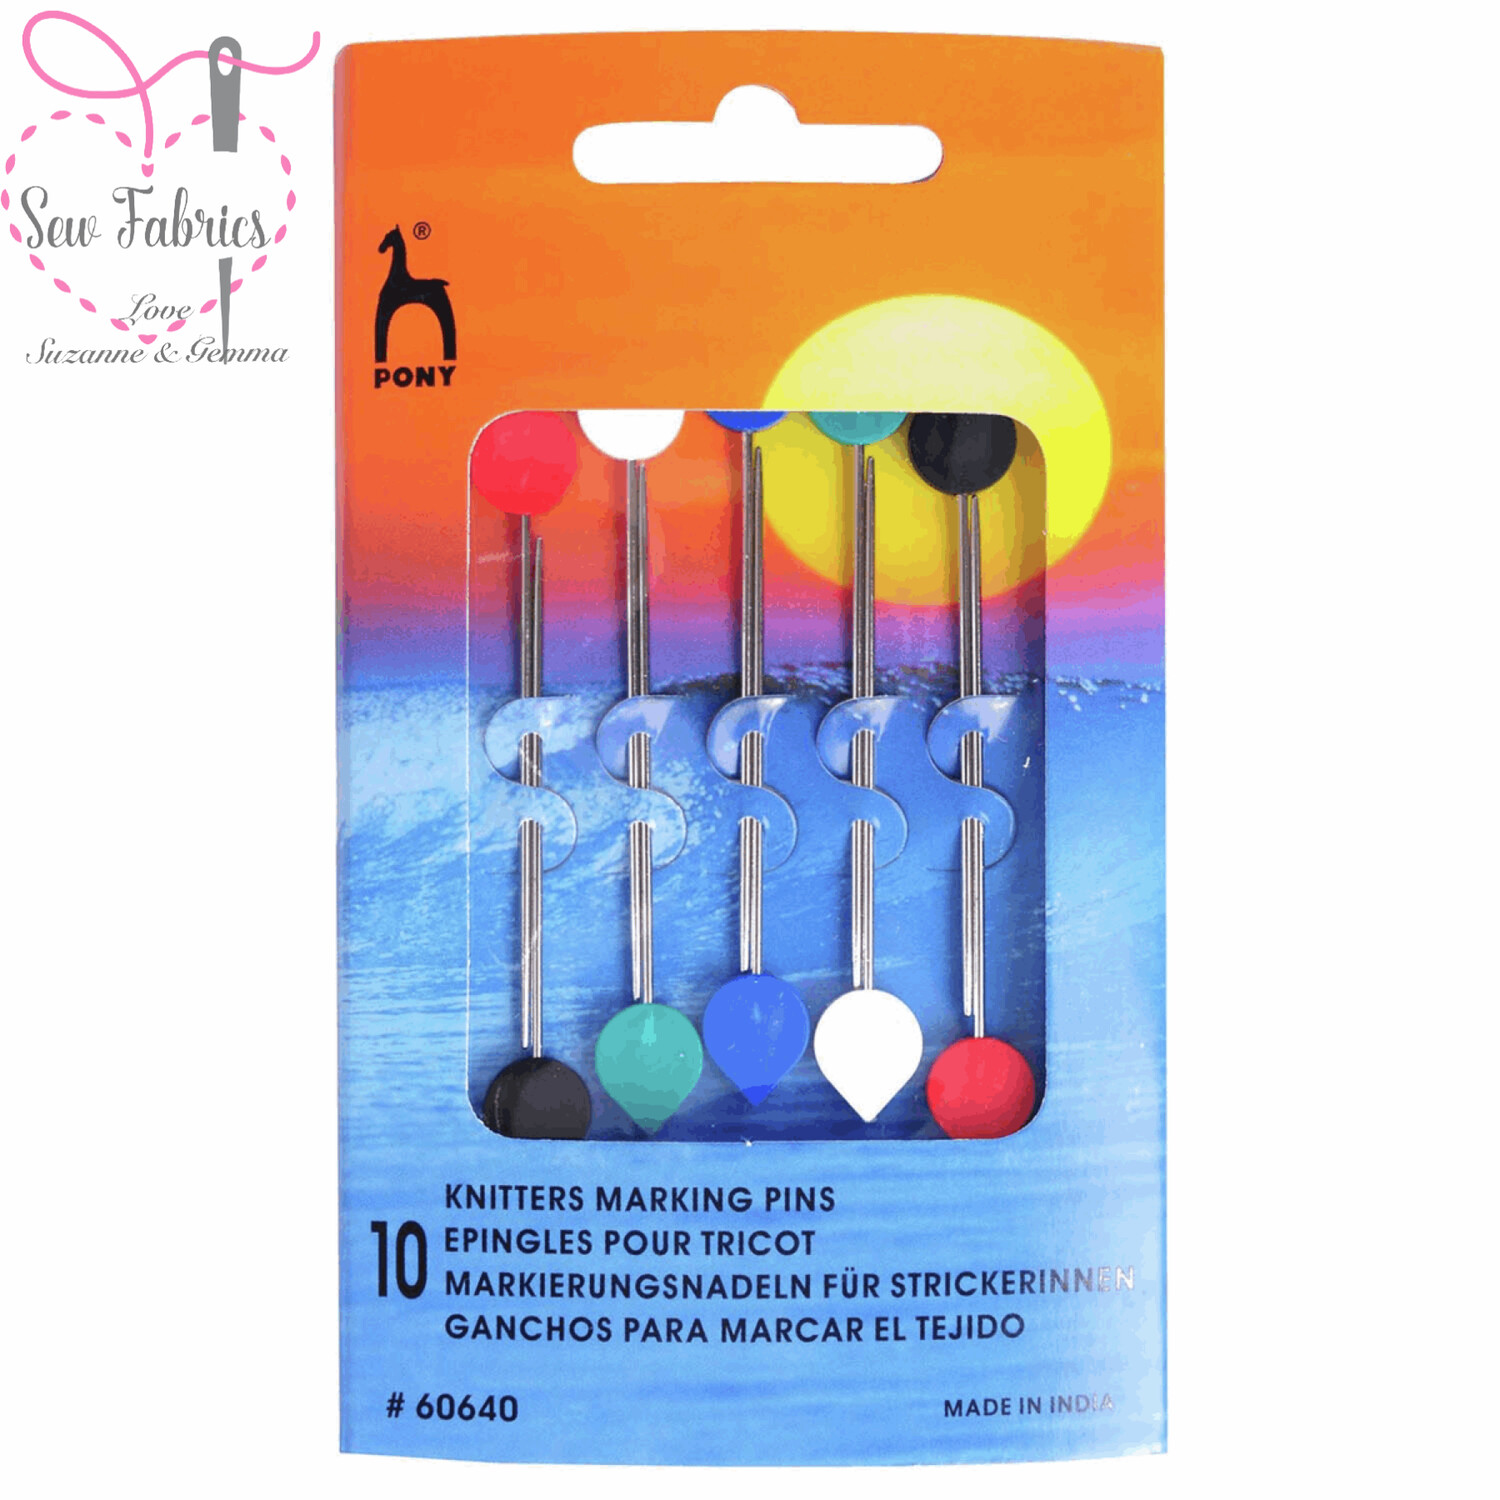 Pack of 10 Pony Knitters Marking Pins